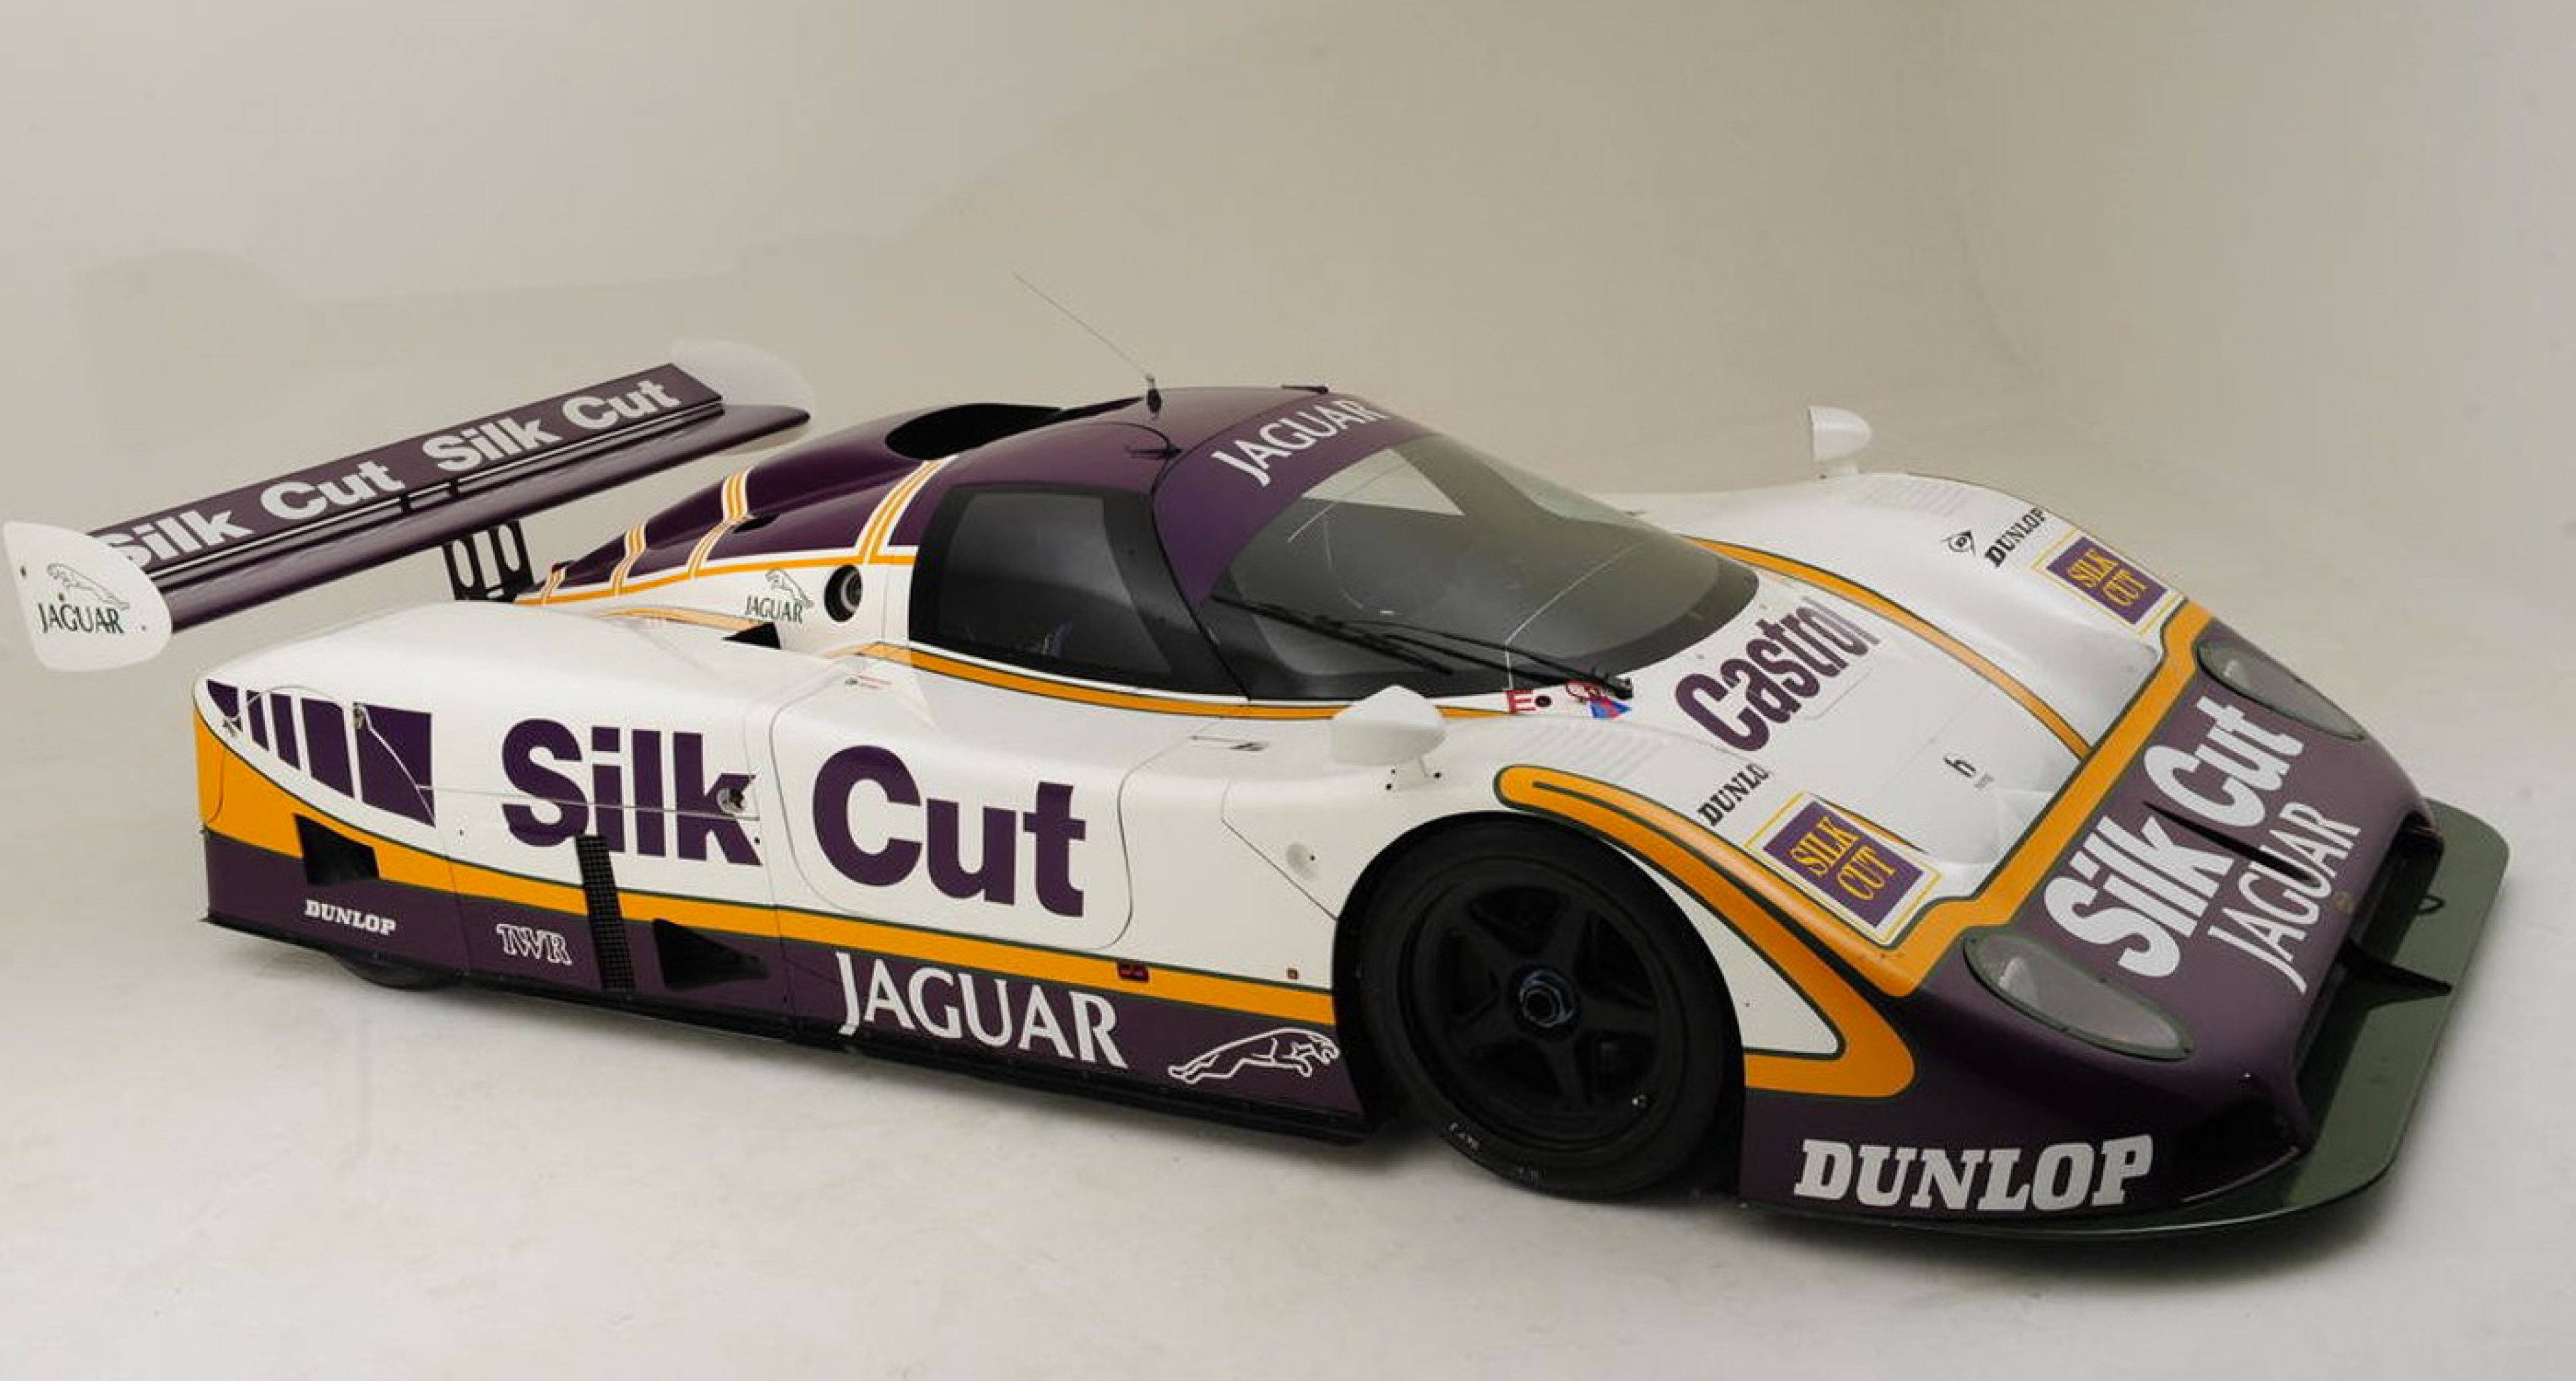 1987 Silk Cut Jaguar XJR-8 Endurance Racing Group C Coupé, estimate GBP 900,000 - 1.2 million.